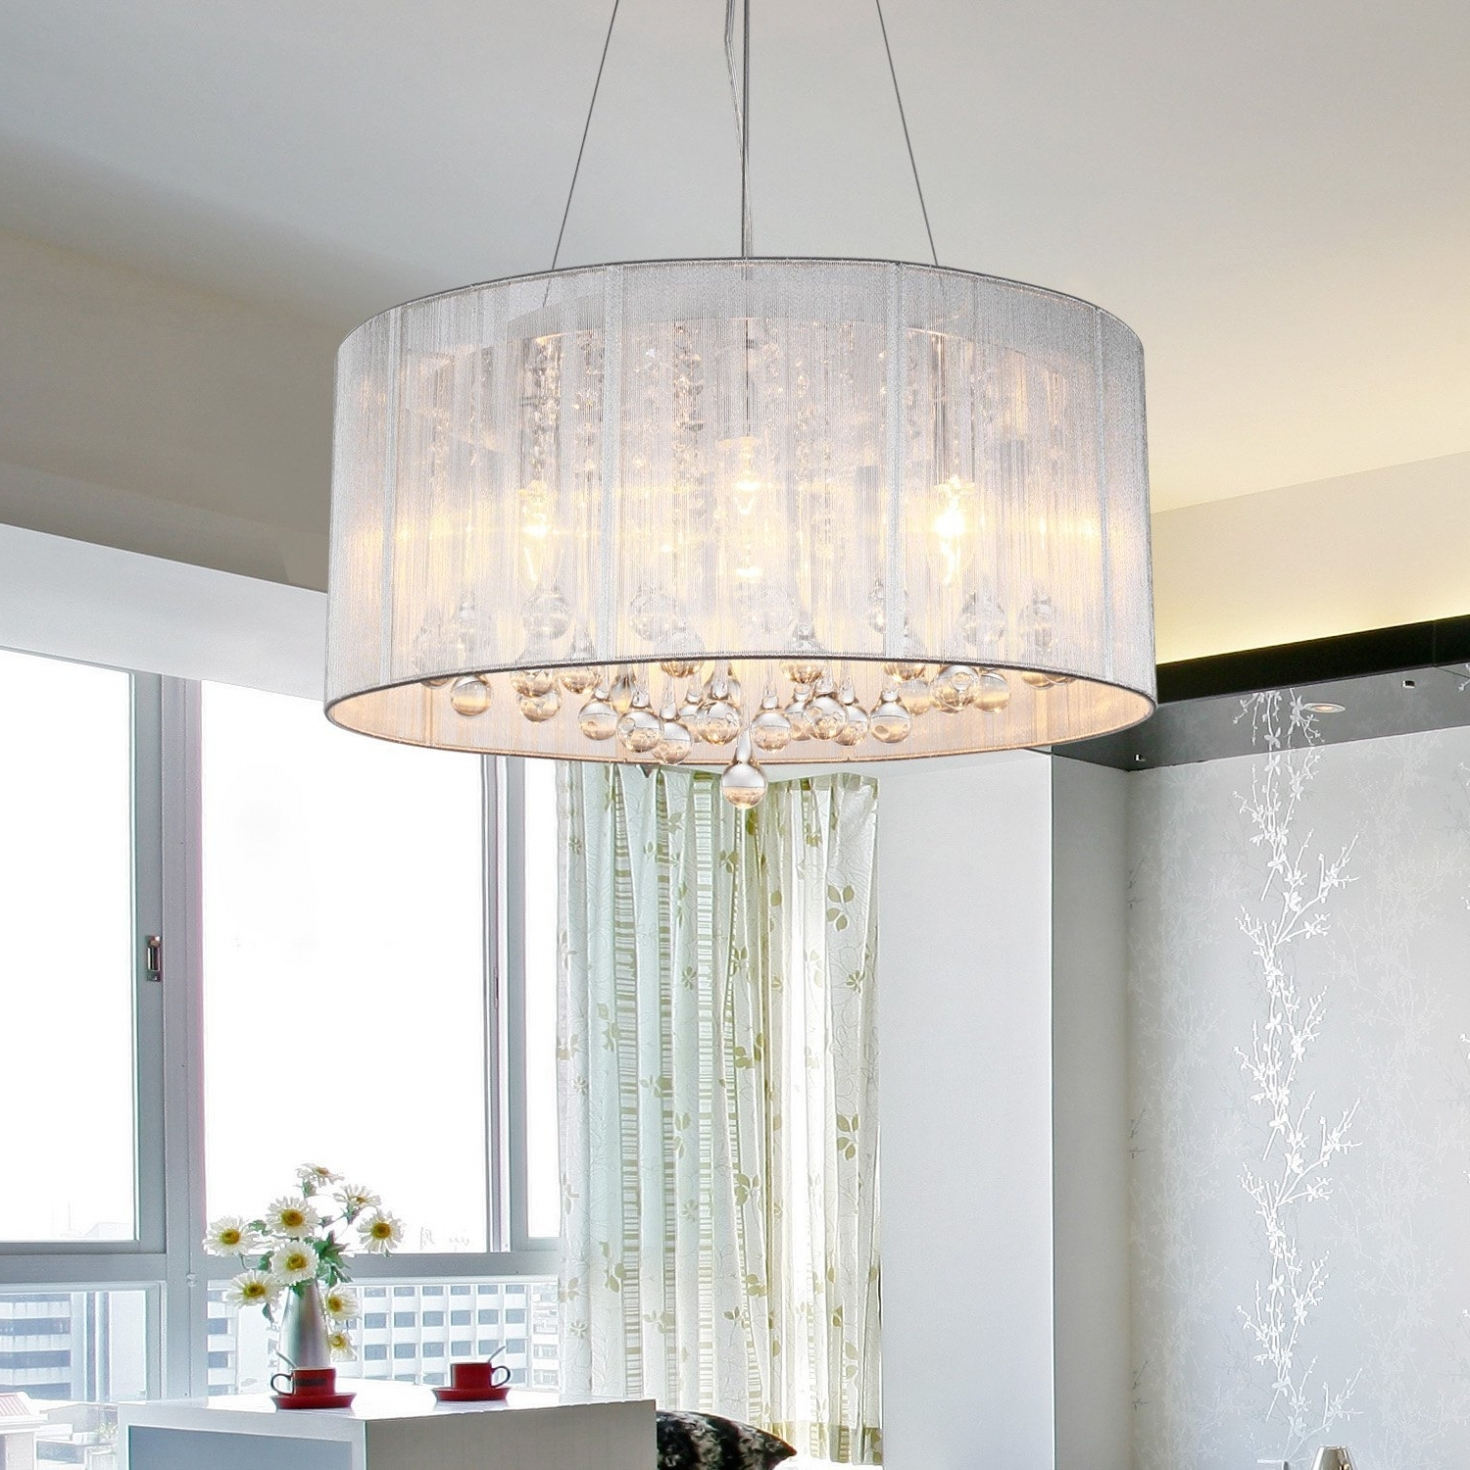 Large Contemporary Chandeliers Pertaining To Best And Newest Home Decor: Chandeliers Design : Fabulous Drumb Contemporary (View 16 of 20)